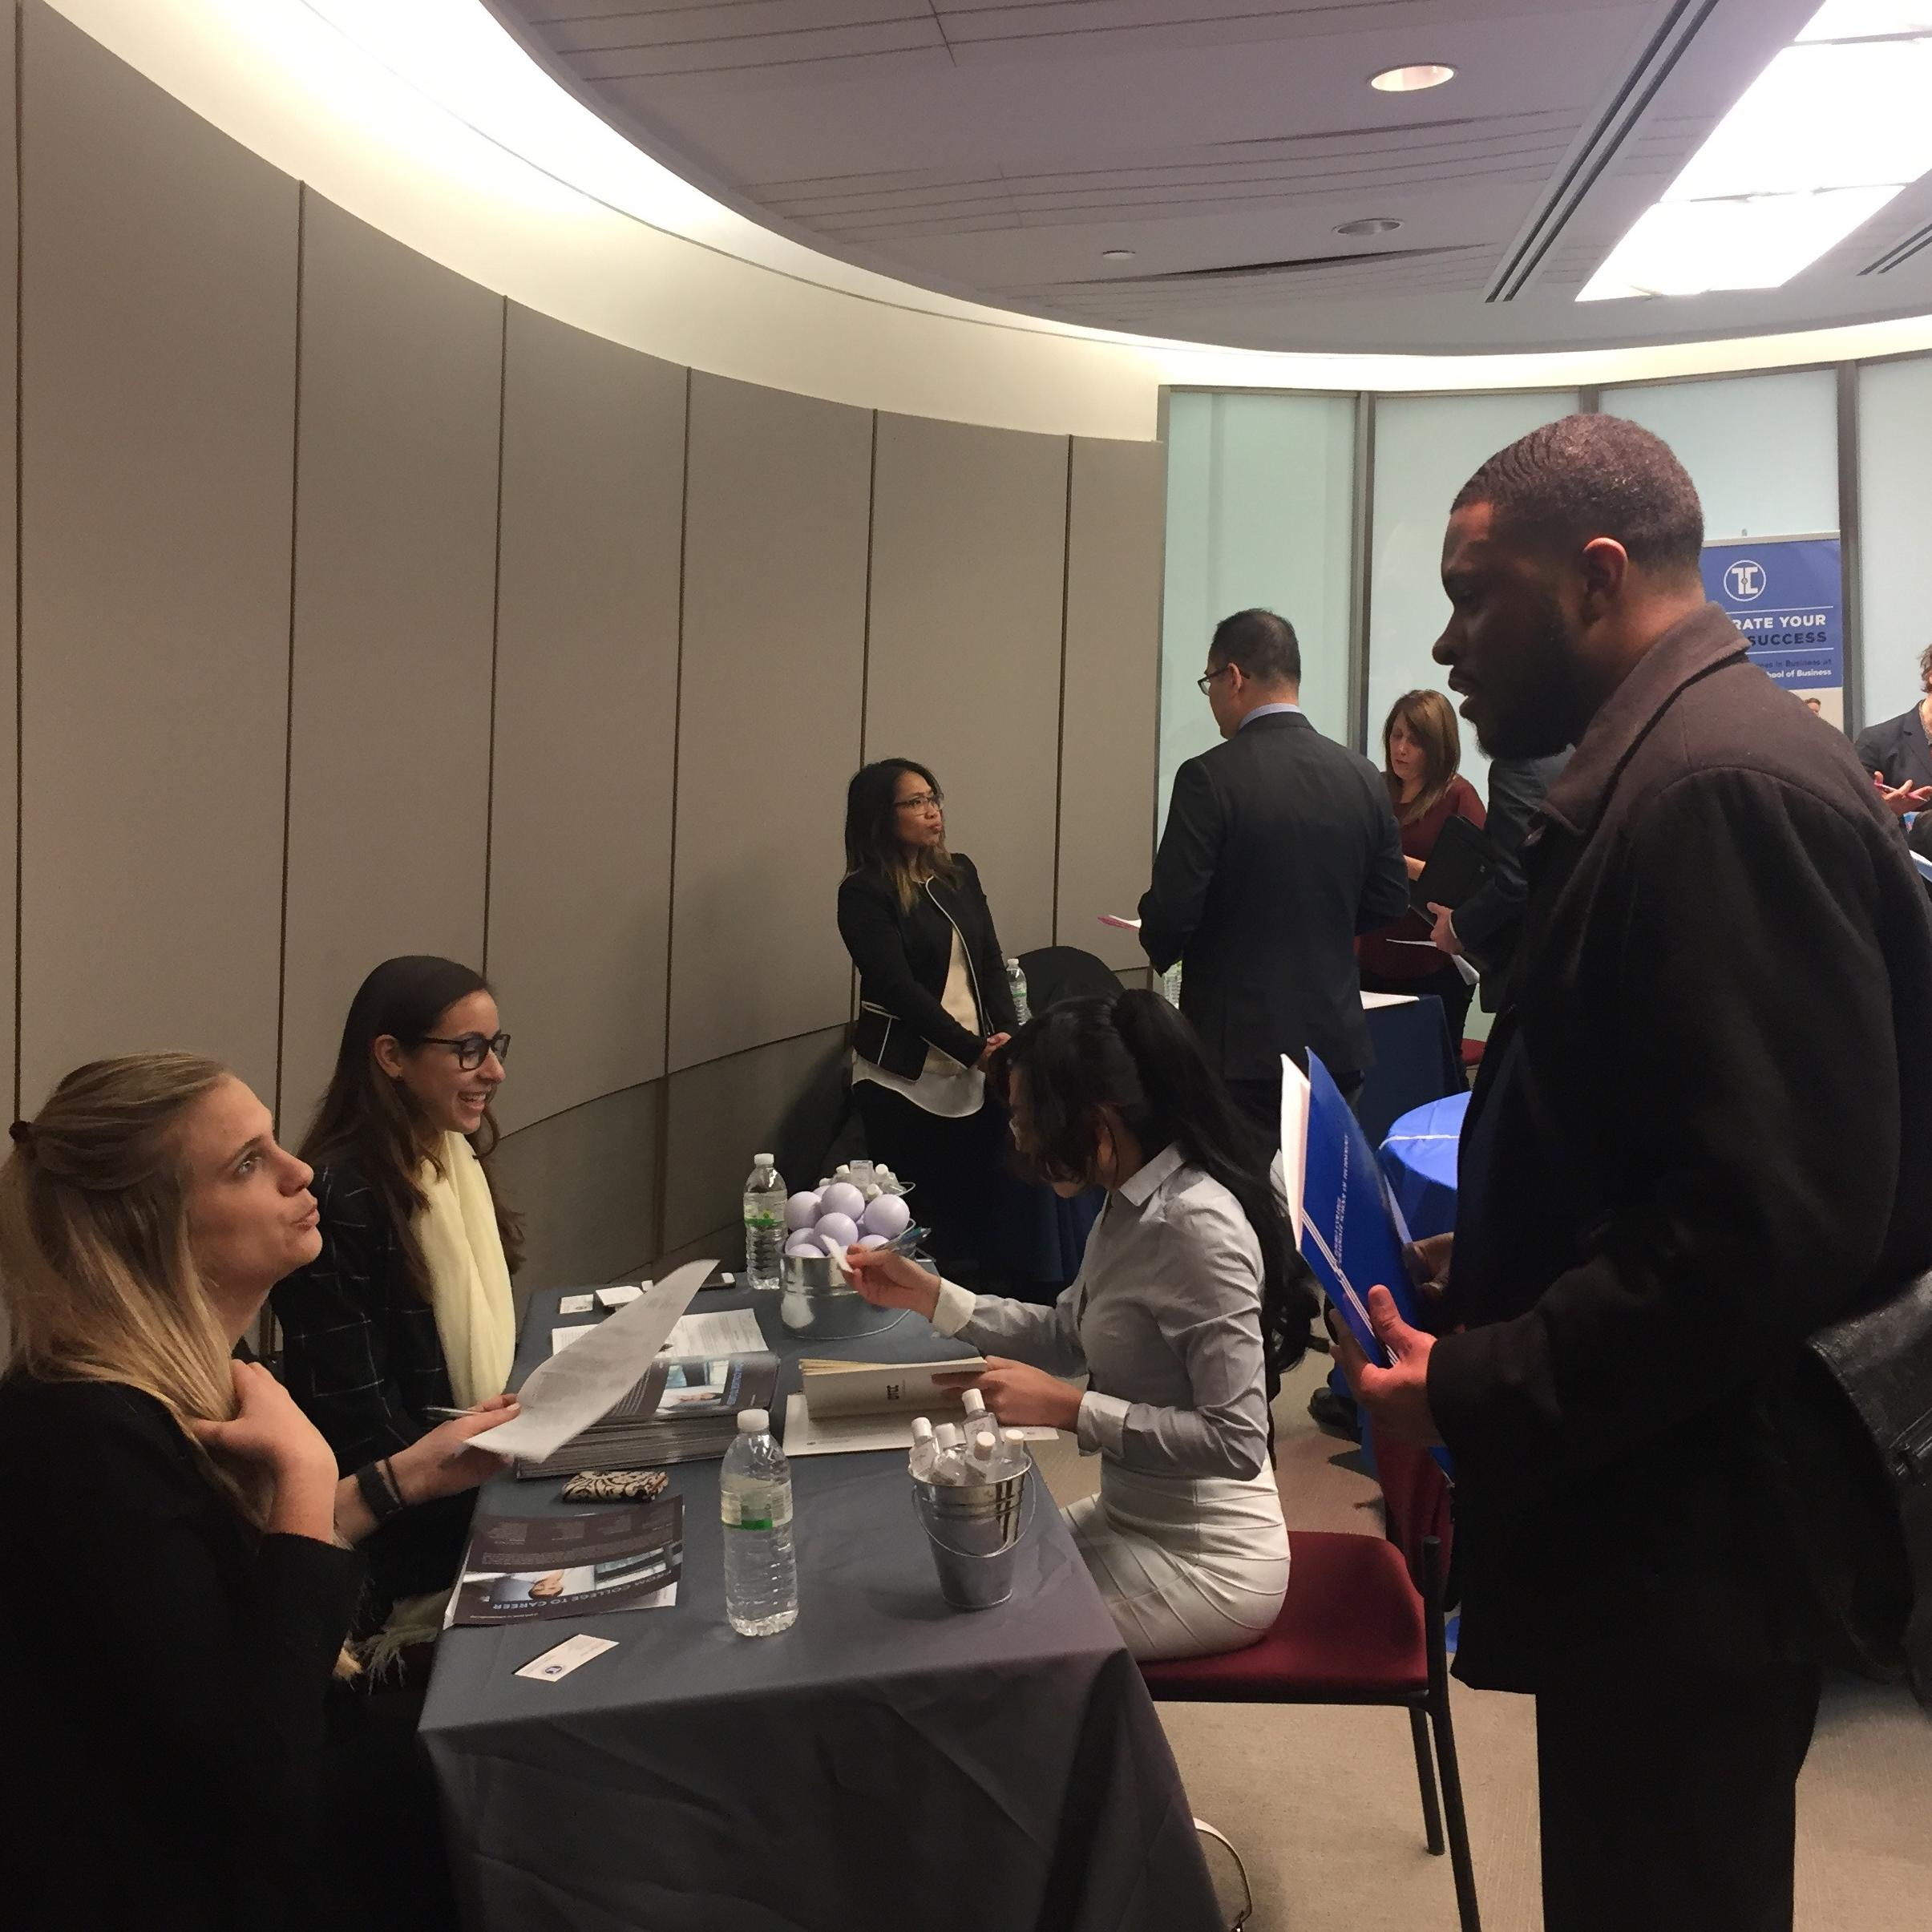 GSB students and alum met with a variety of high-profile employers at GSB's 2017 Career Fair.